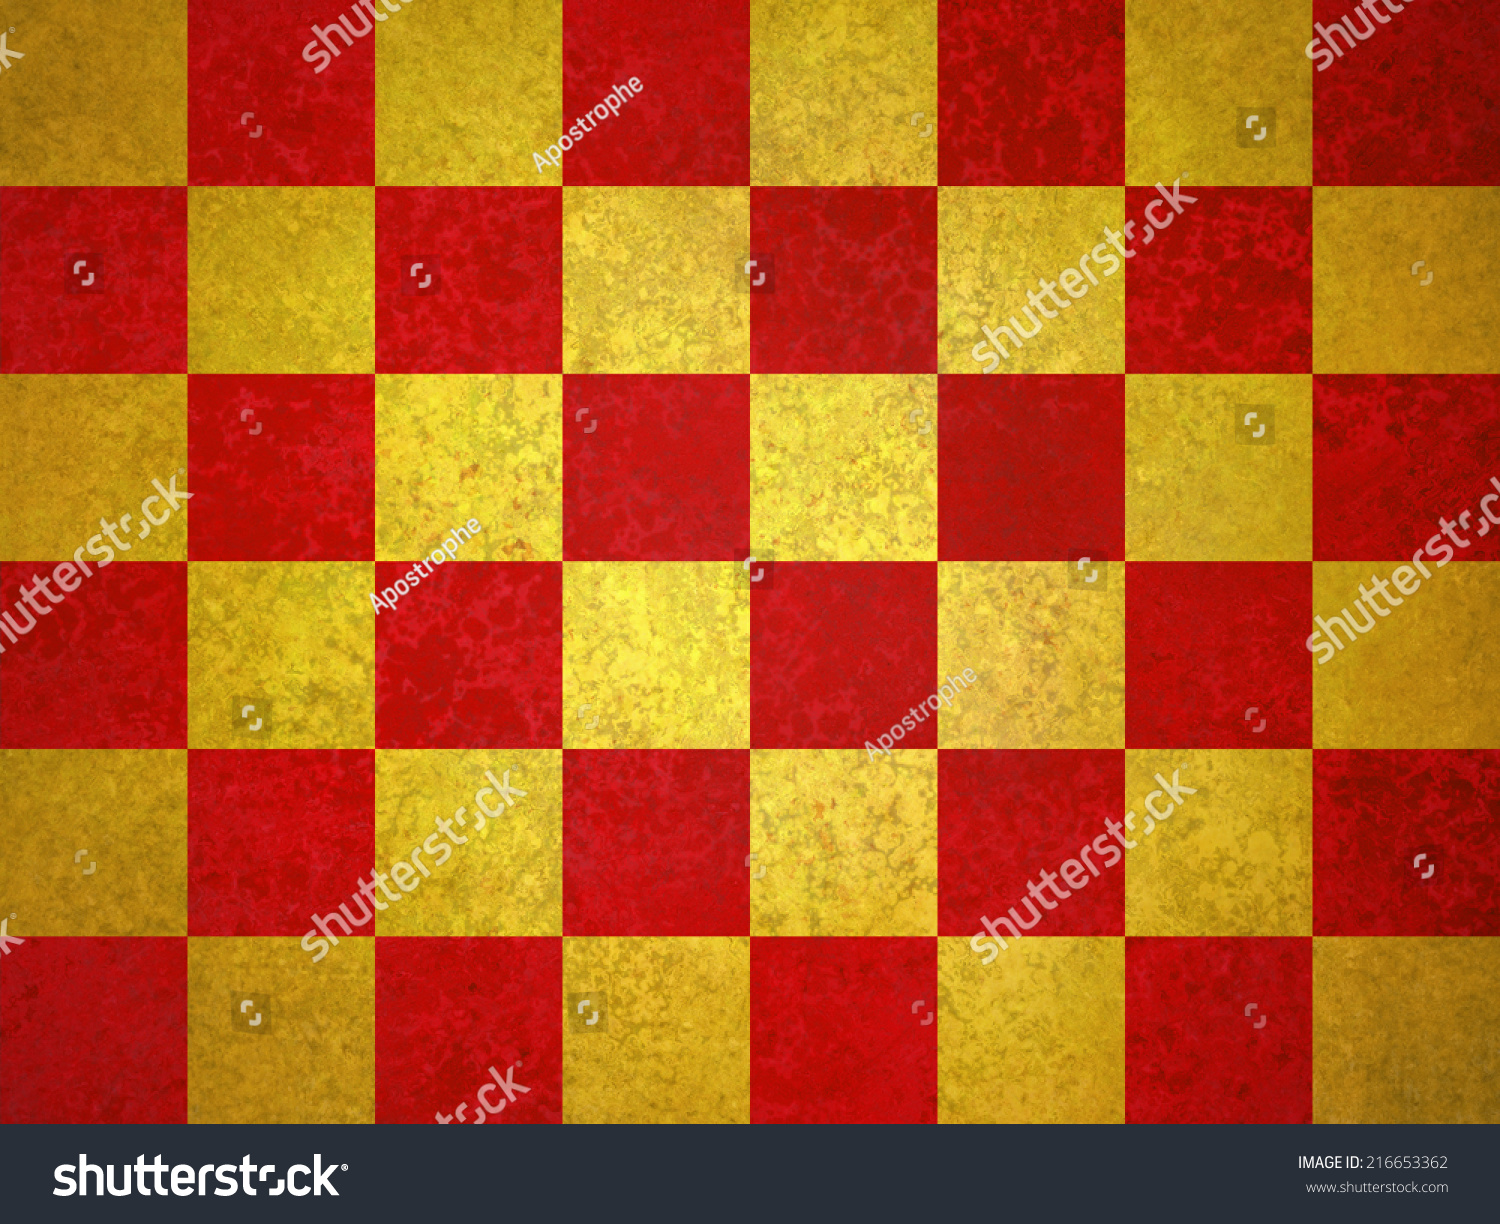 Vintage Gold Red Checkerboard Pattern Background Stock Illustration ...